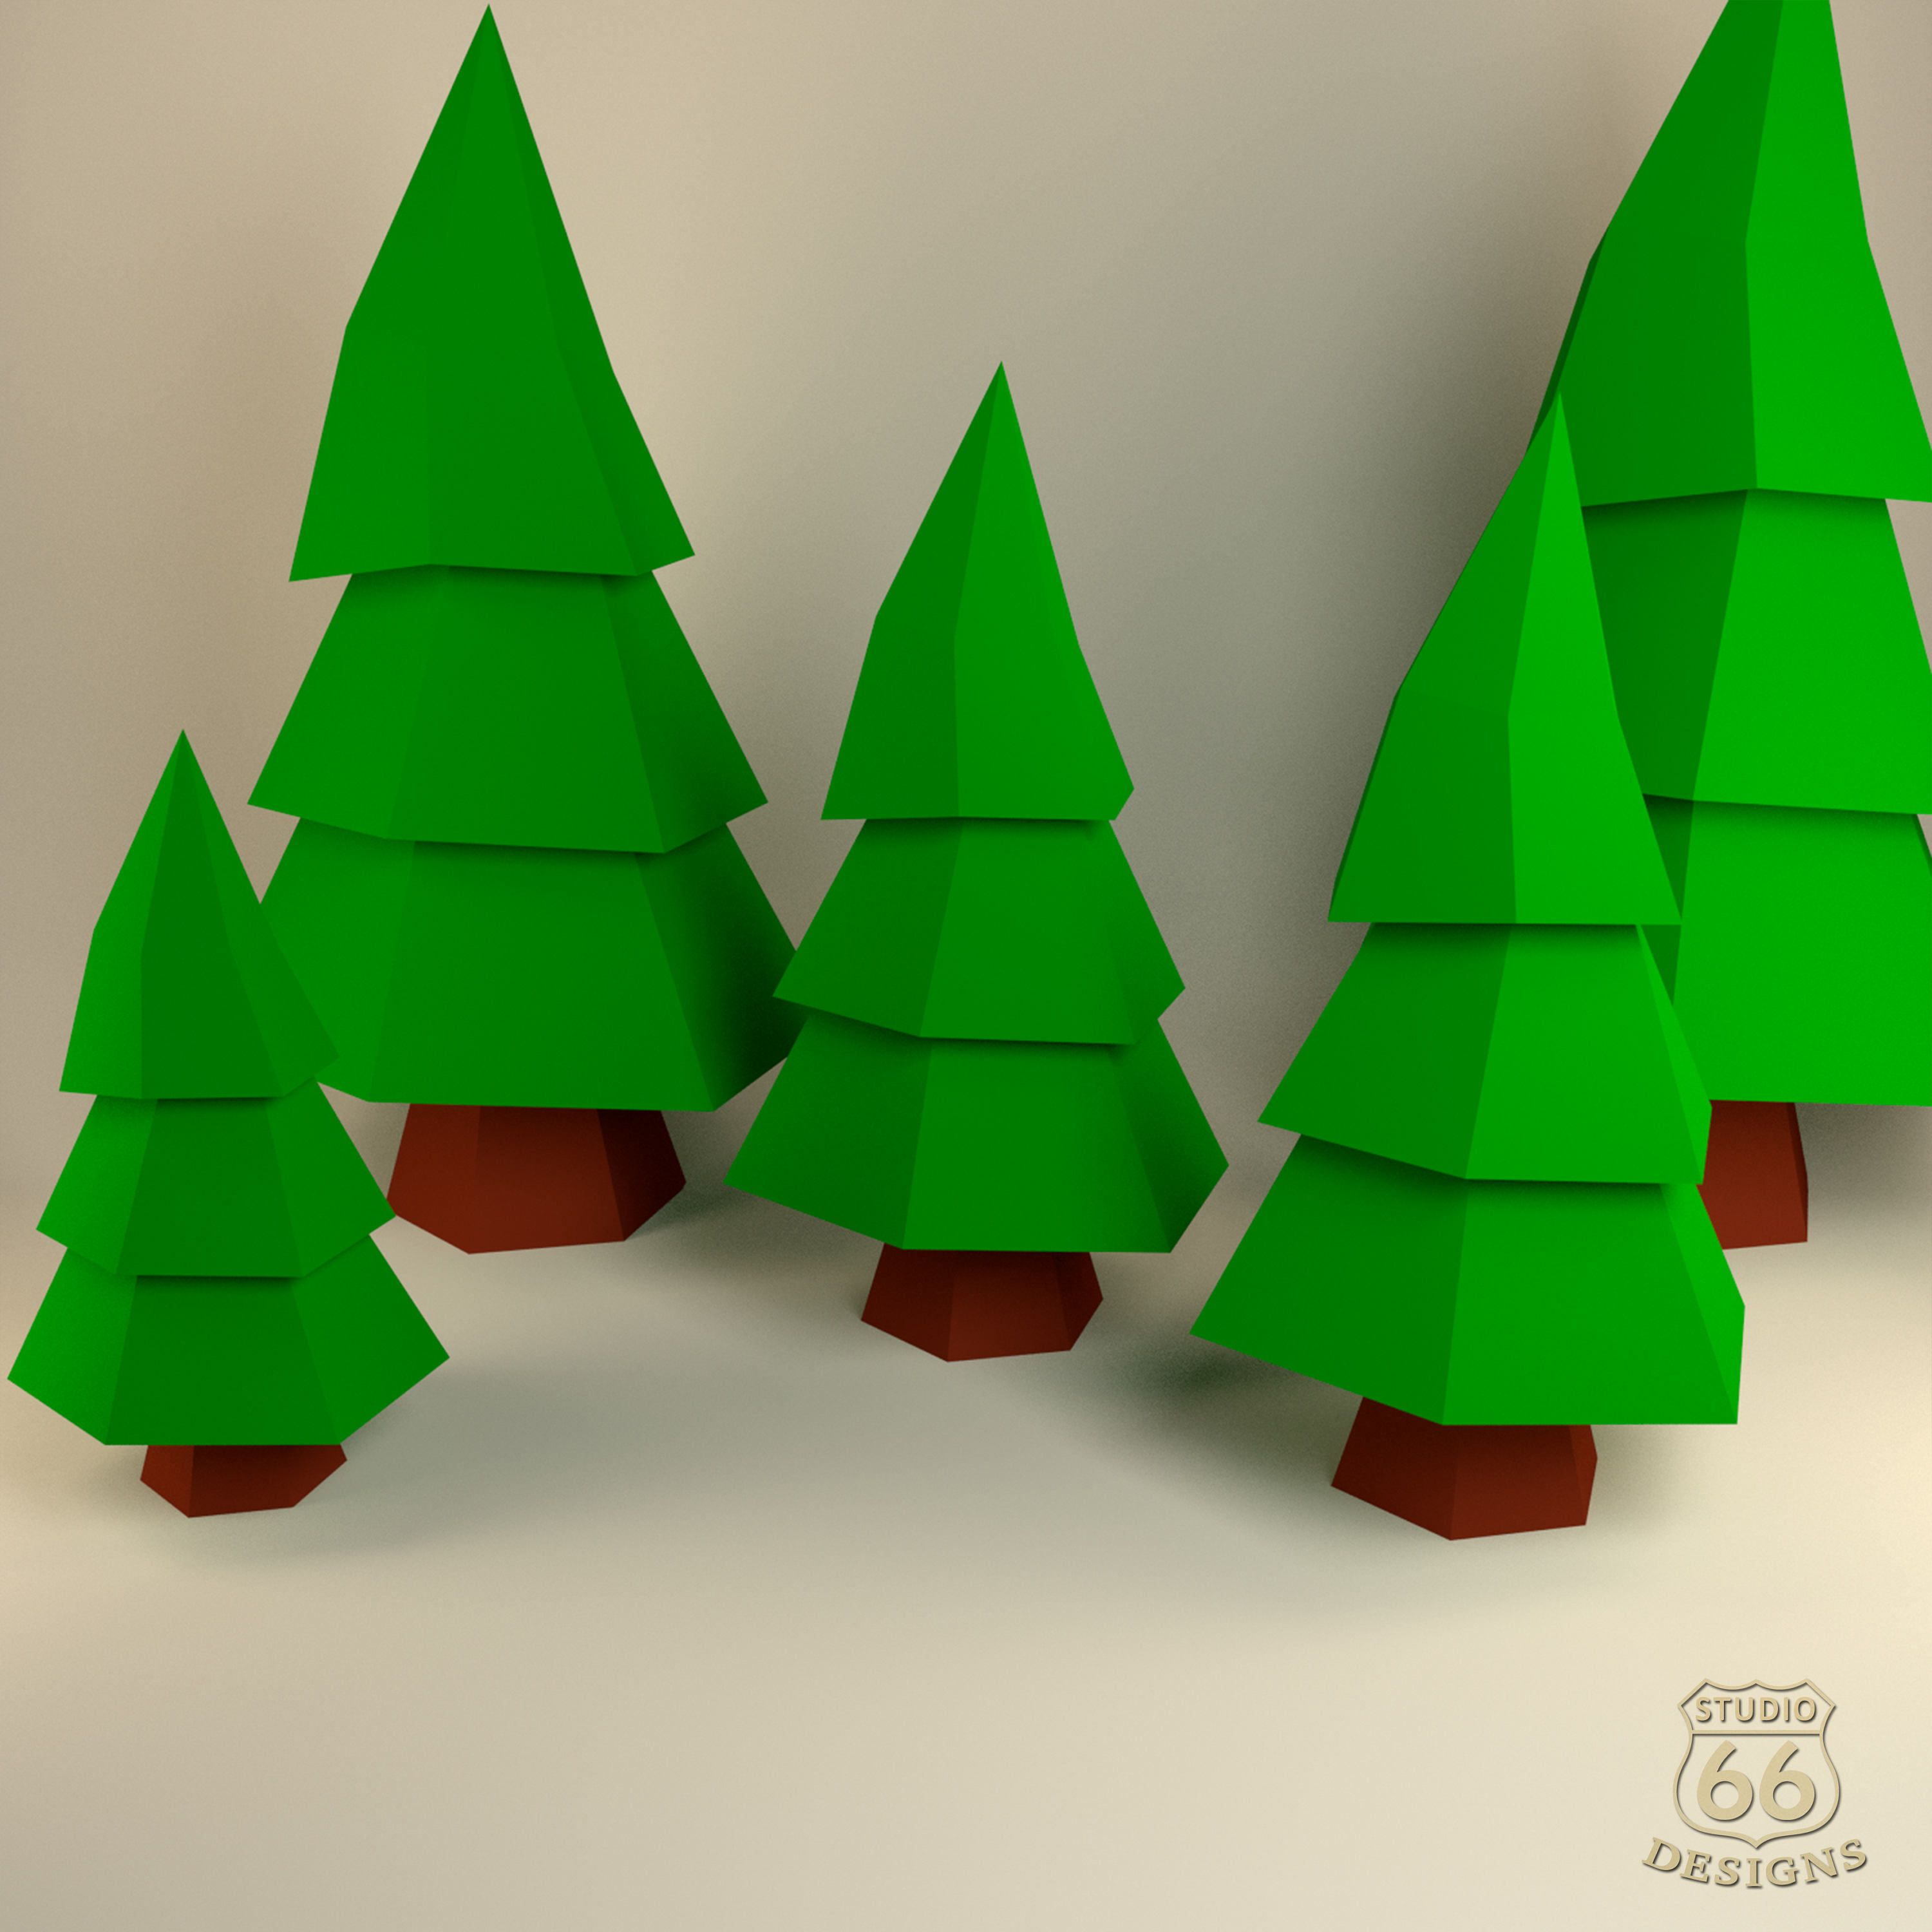 Christmas Tree Papercraft Tree Paper Tree Happy New Year Papertoy Home Decor Christmas 3d Papercraft Model Lowpoly Diy Hobby Idea In 2020 Paper Tree Paper Crafts Diy Paper